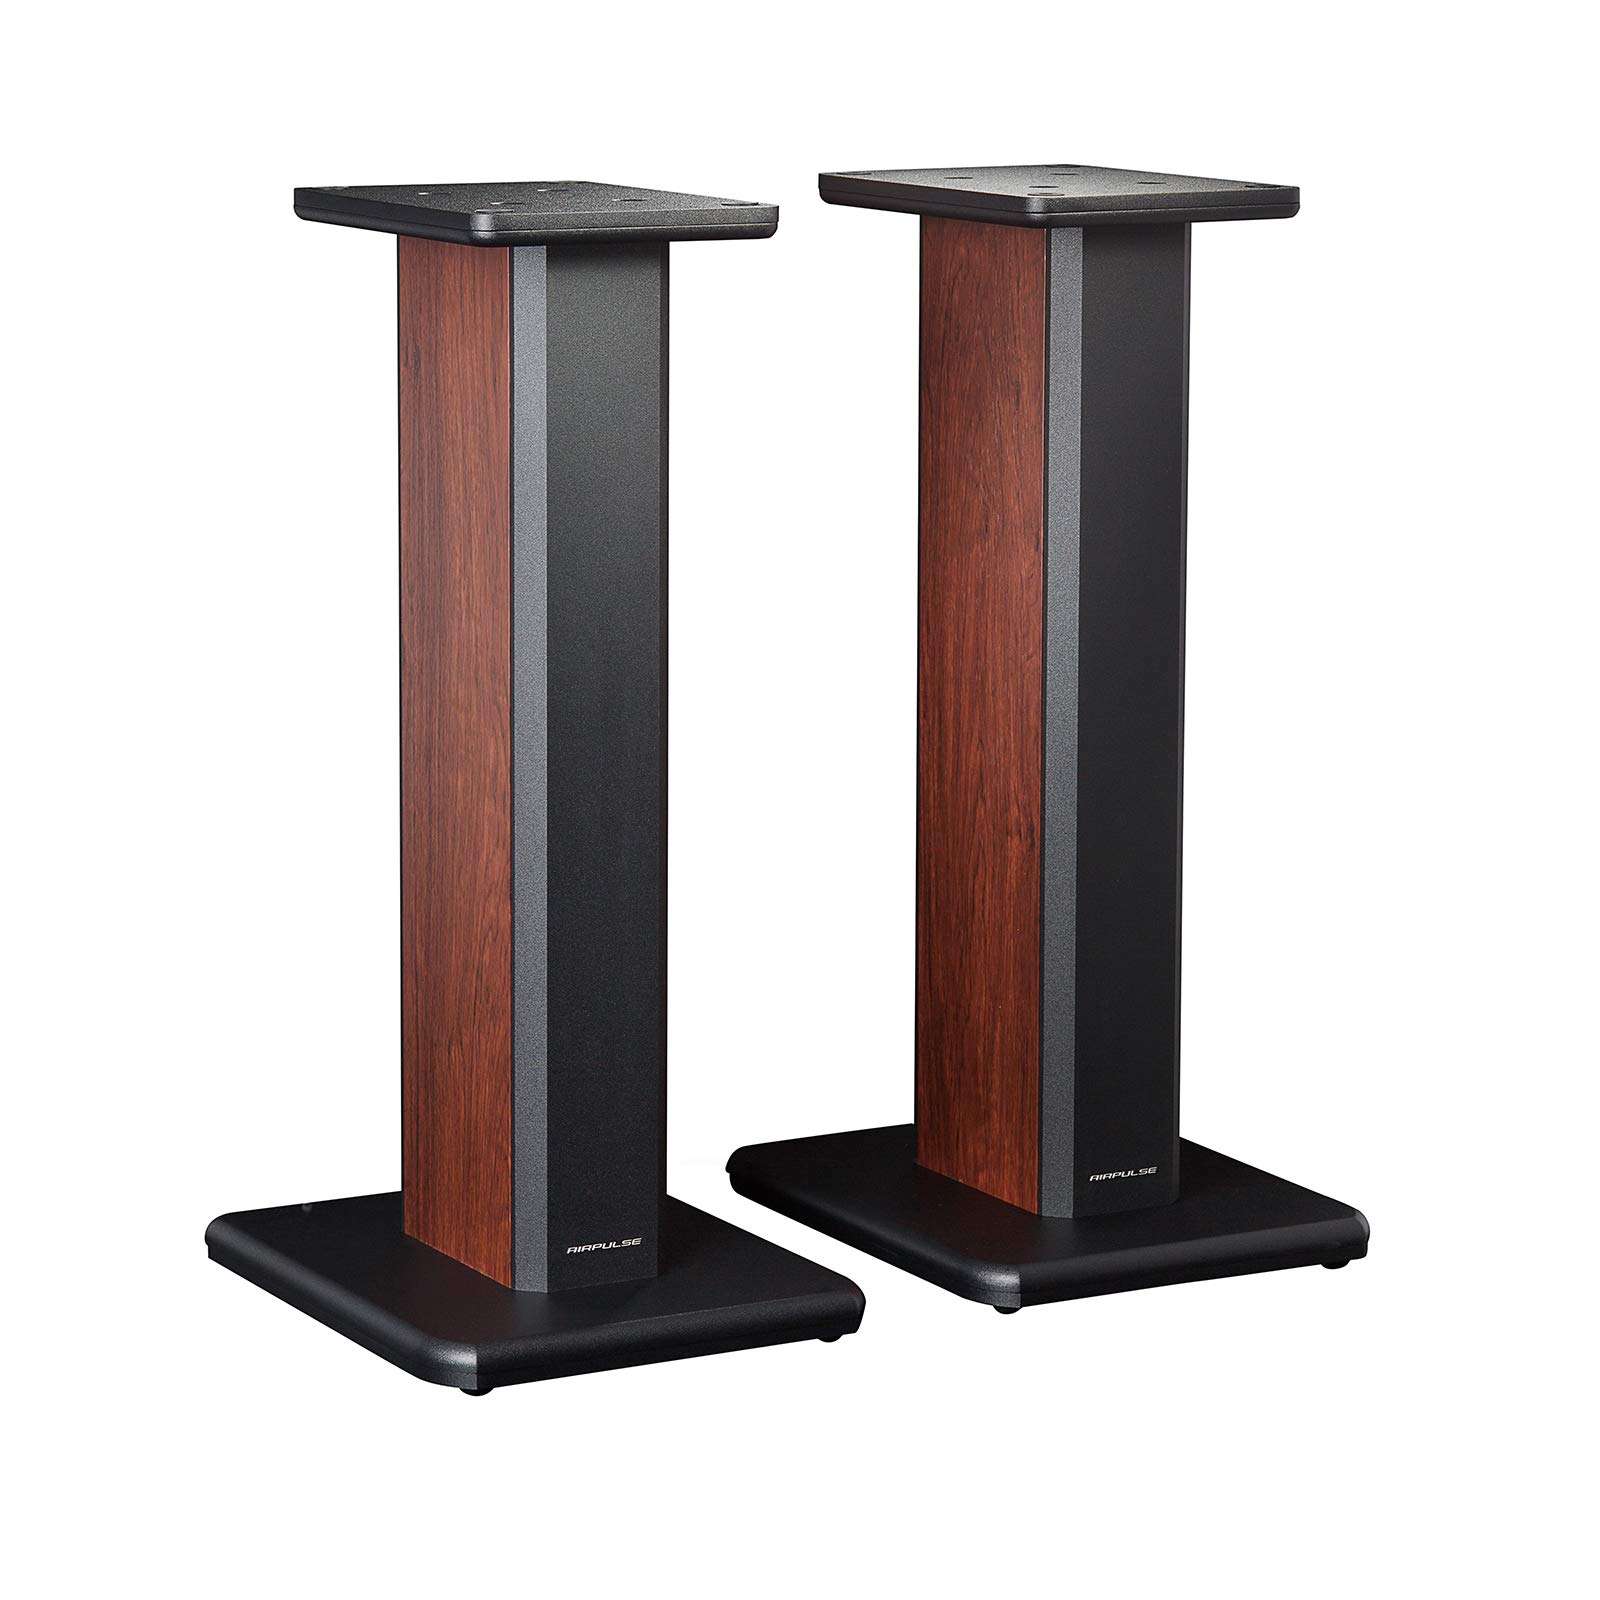 Airpulse Speaker Stands ST300 for A300 Hollowed Stands for Optional Sand Filling Tuning - Pair by Airpulse